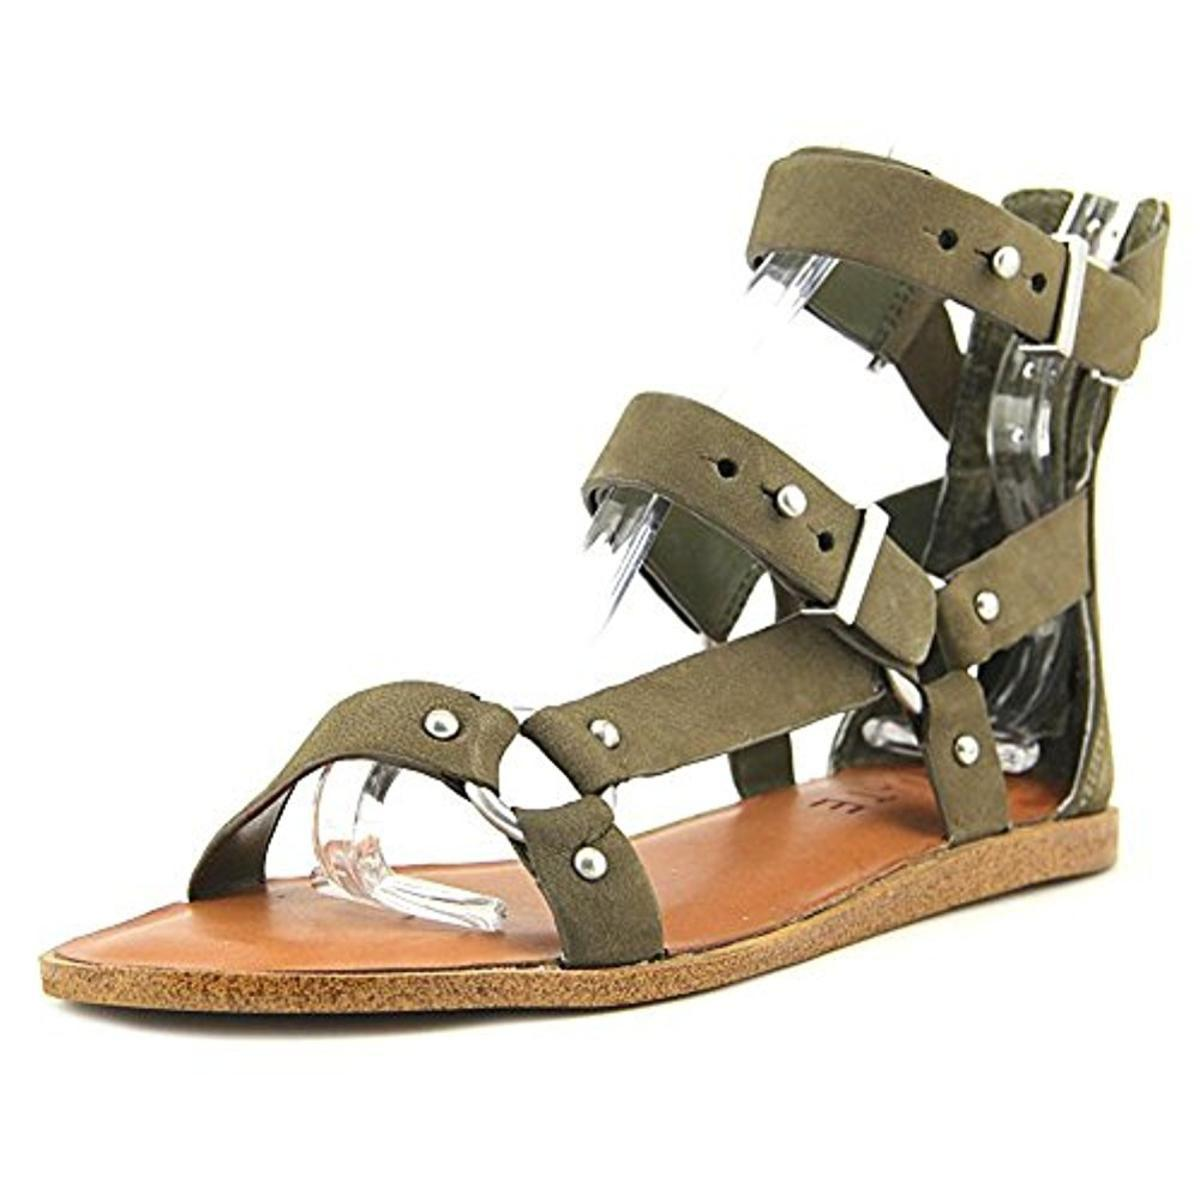 a257f365358f Lyst - 1.State 1.state Womens Channdra Strappy Open Toe Gladiator ...